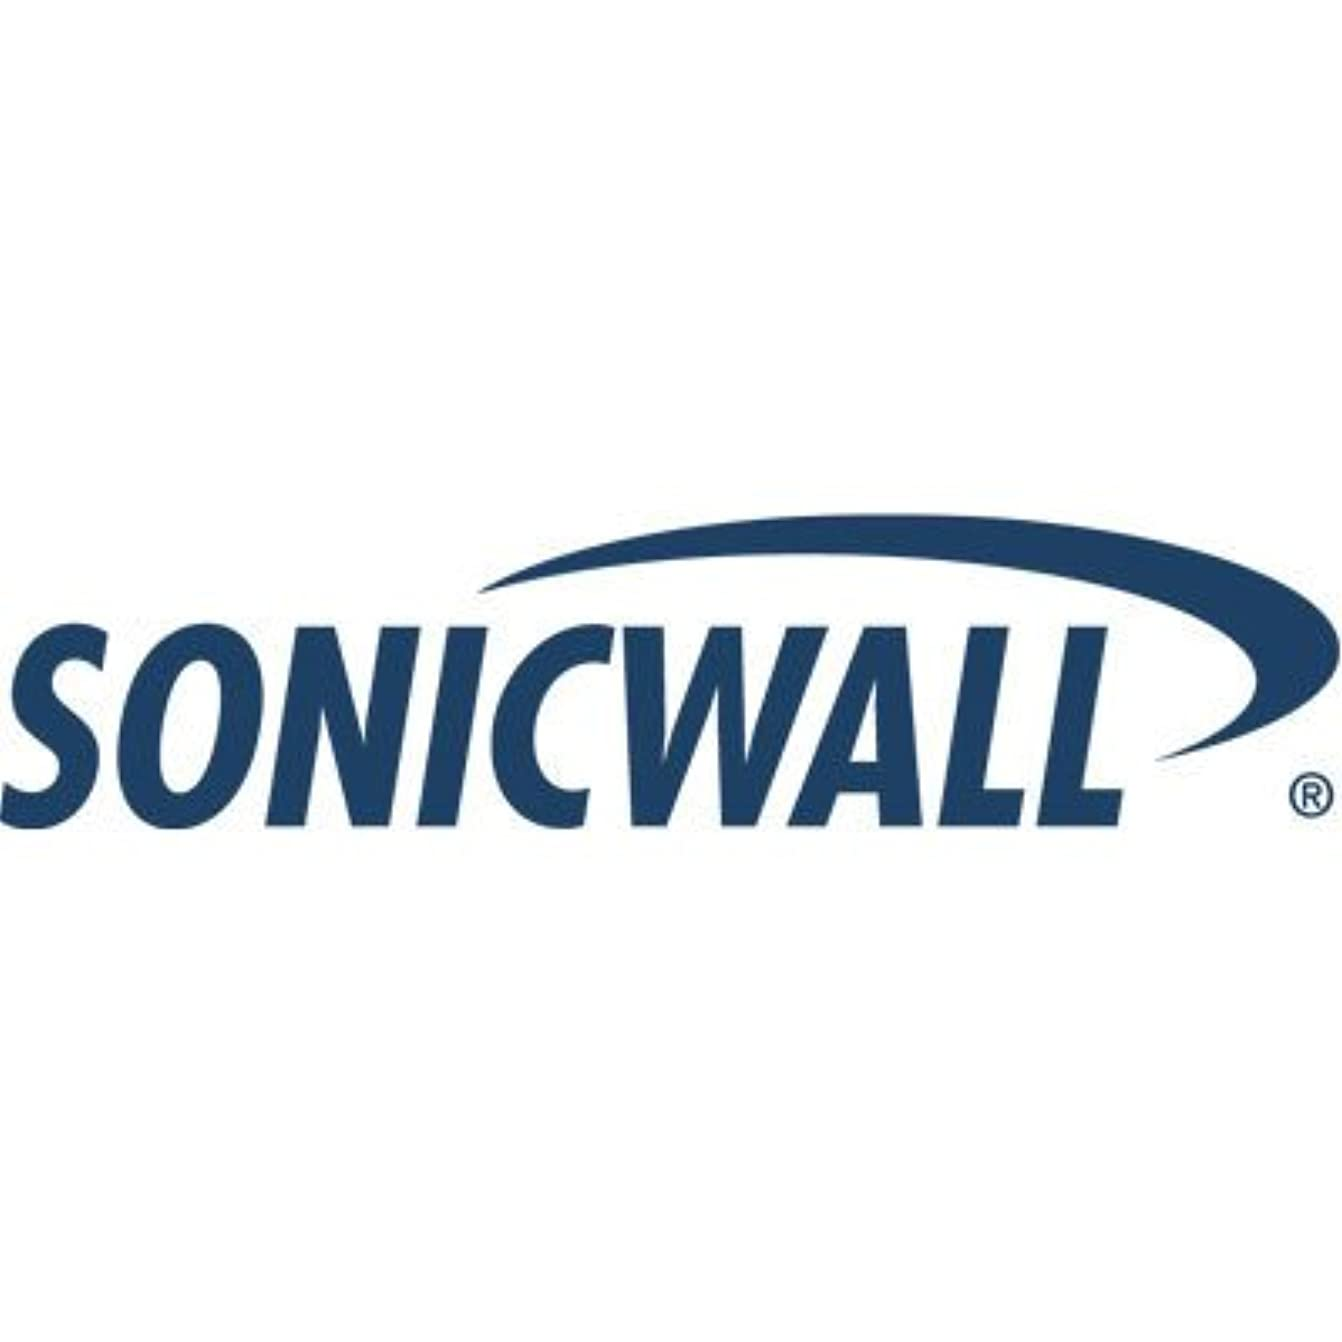 に対処する透明に小麦SonicWALL Enforced Client Anti-Virus & Anti-Spyware (10 Users) (2 Years)